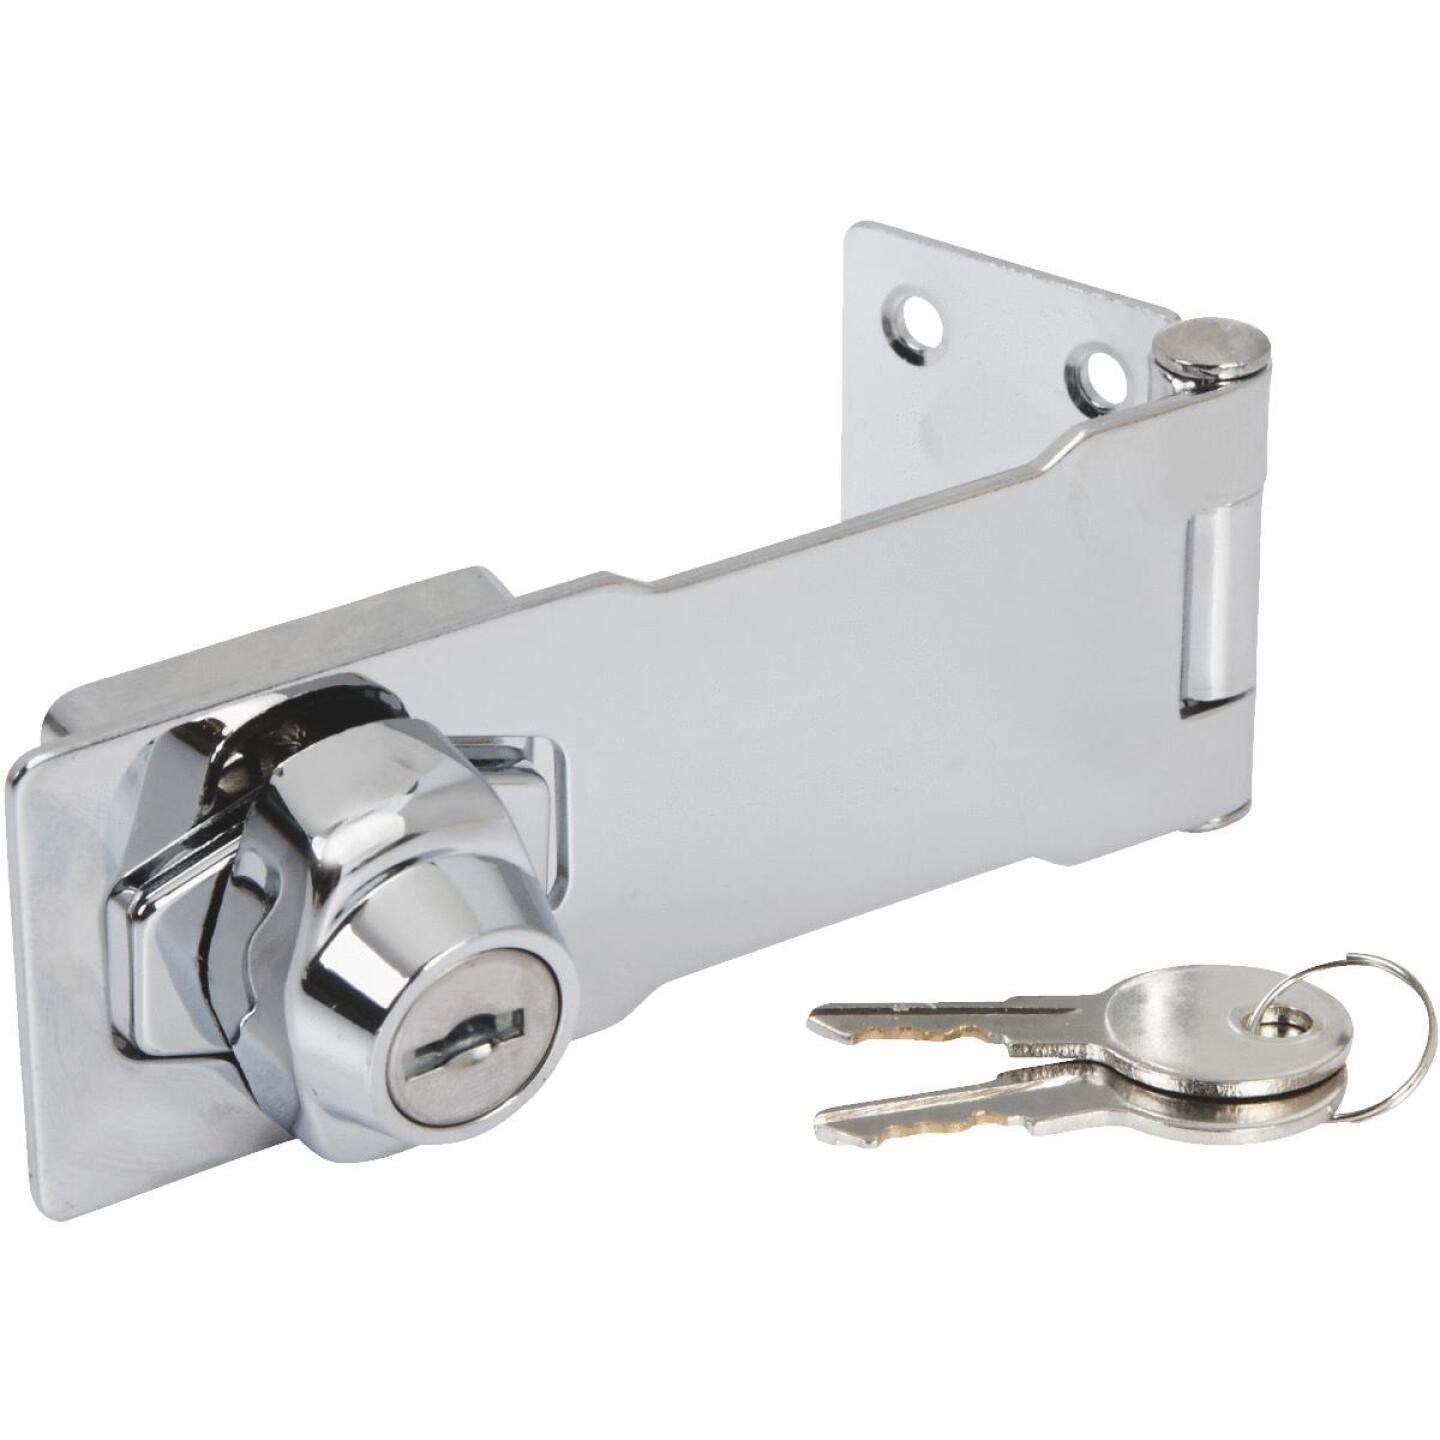 National 4-1/2 In. Keyed Alike Hasp Lock Image 2